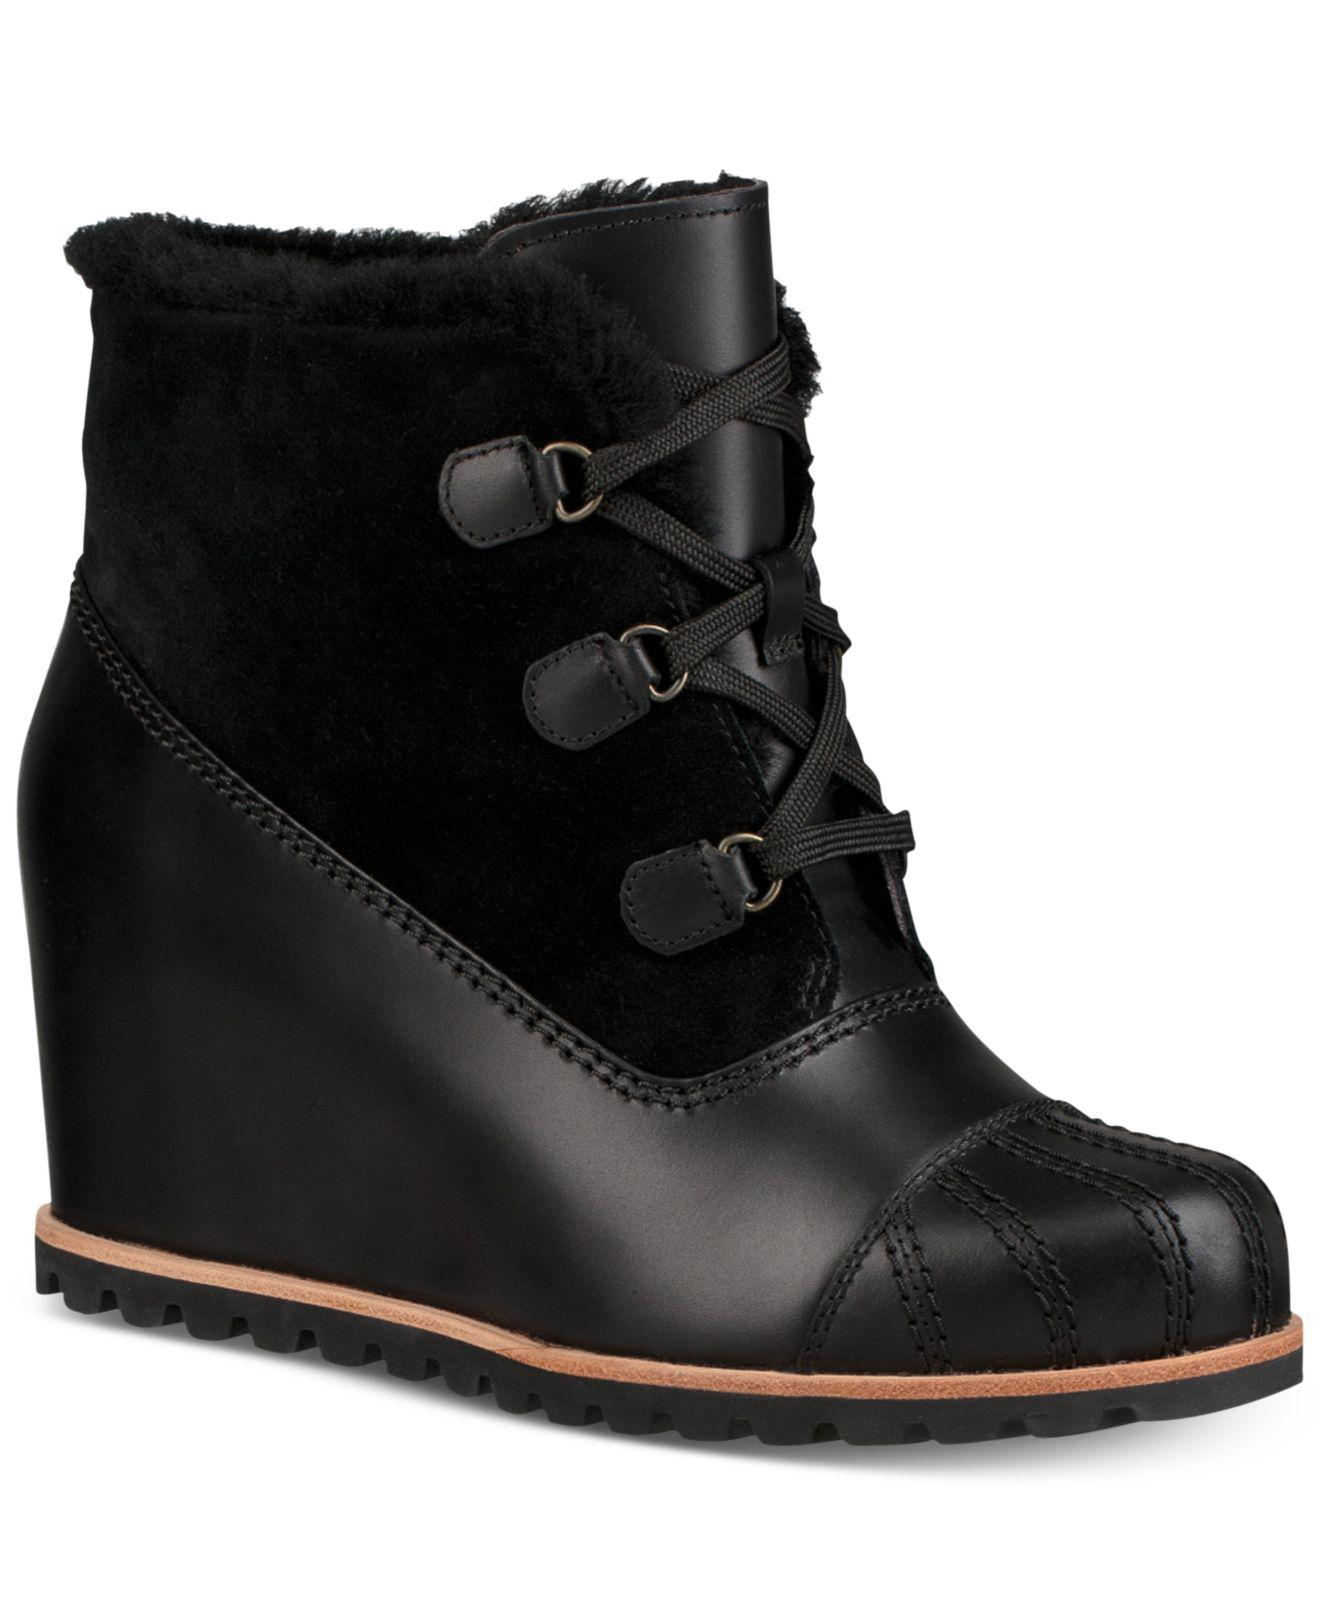 8db5c4f1da2 Lyst - UGG Alasdair Wedge Ankle Booties in Black